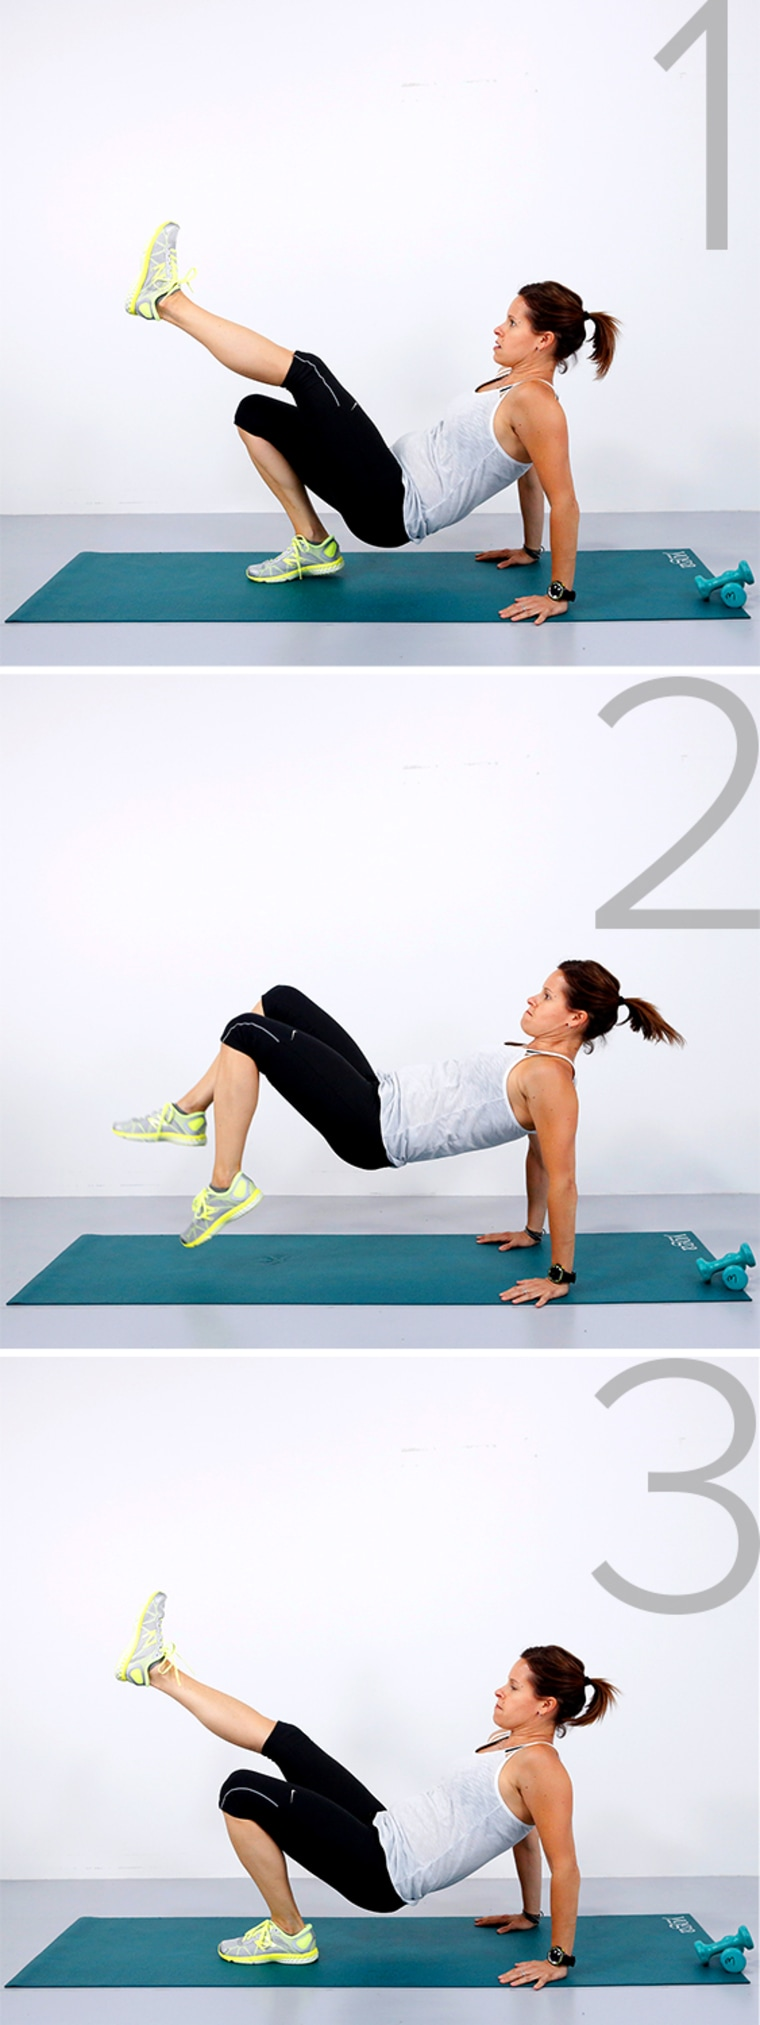 3 workouts for beginners: Get in shape anywhere with this fitness plan